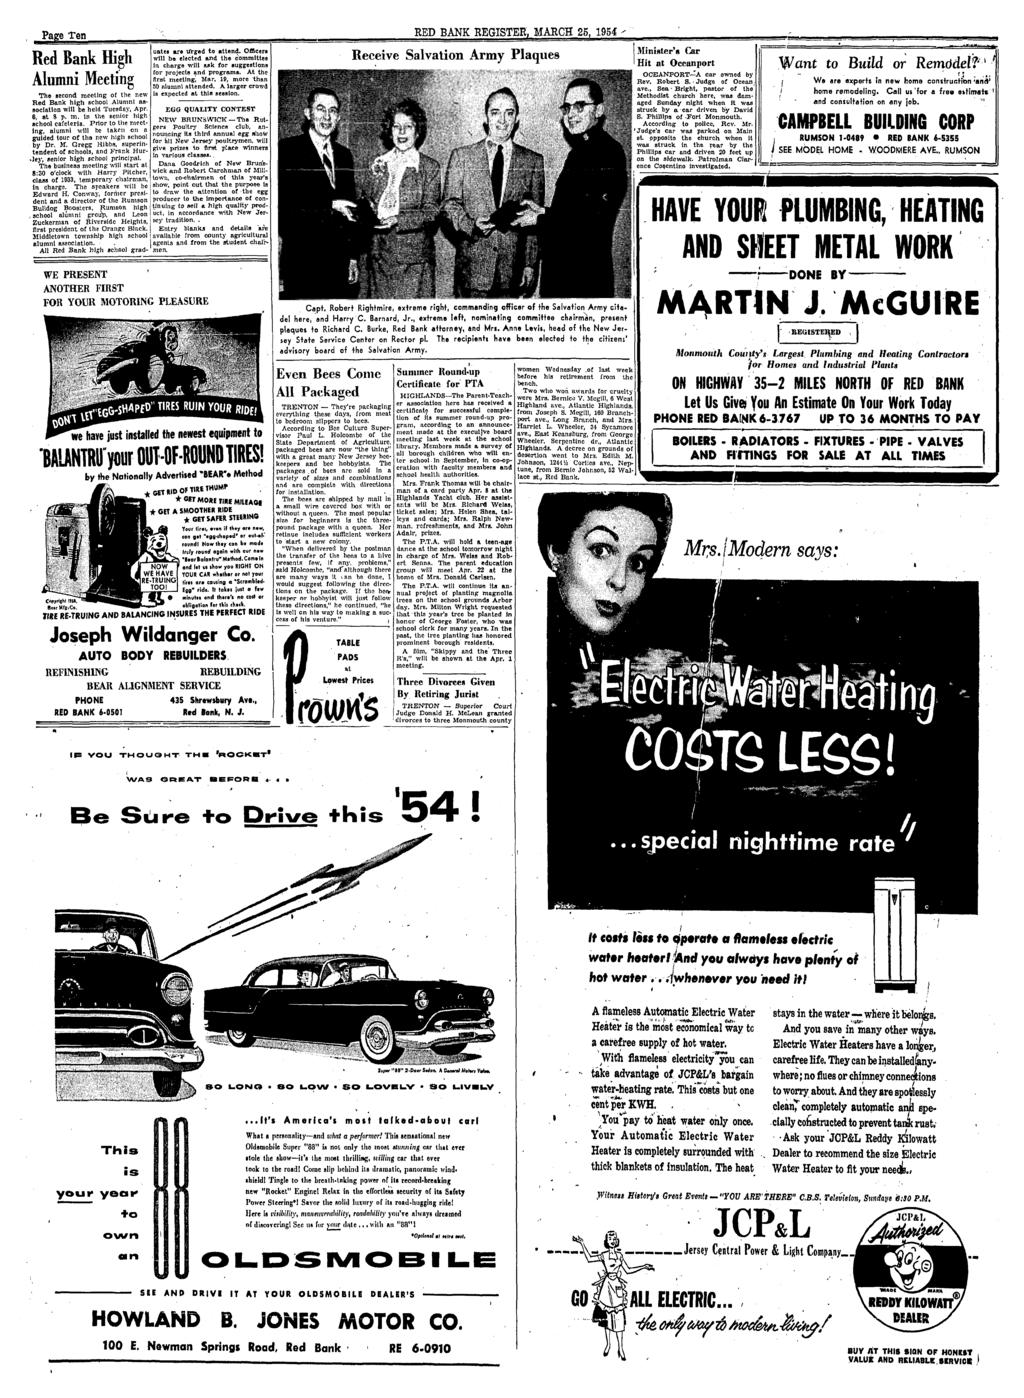 Red Bank Register For All Departments Call Pdf Rambler Wiring Diagram Apm 2 8 Harley Sportster Tail Page Ten March 25 1954 High Alumni Meeting The